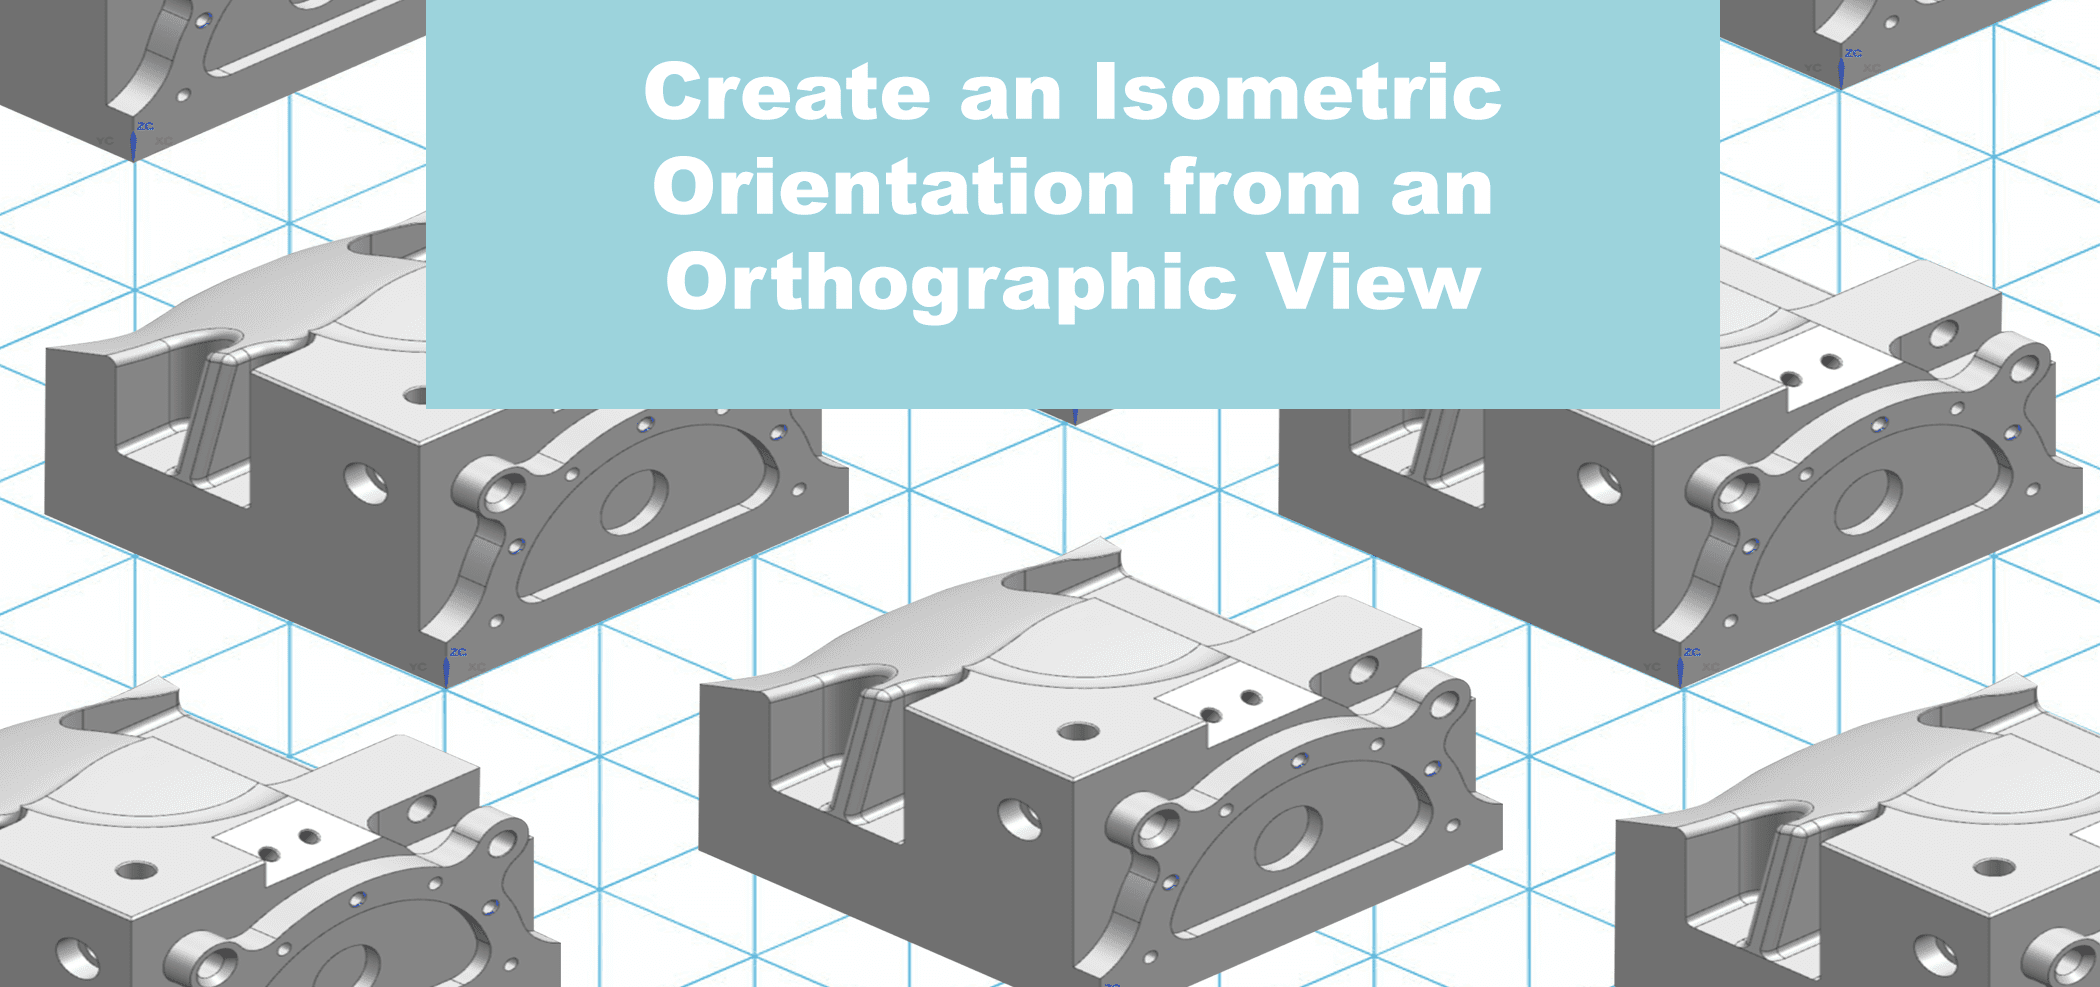 Create an Isometric Orientation from an Orthographic View